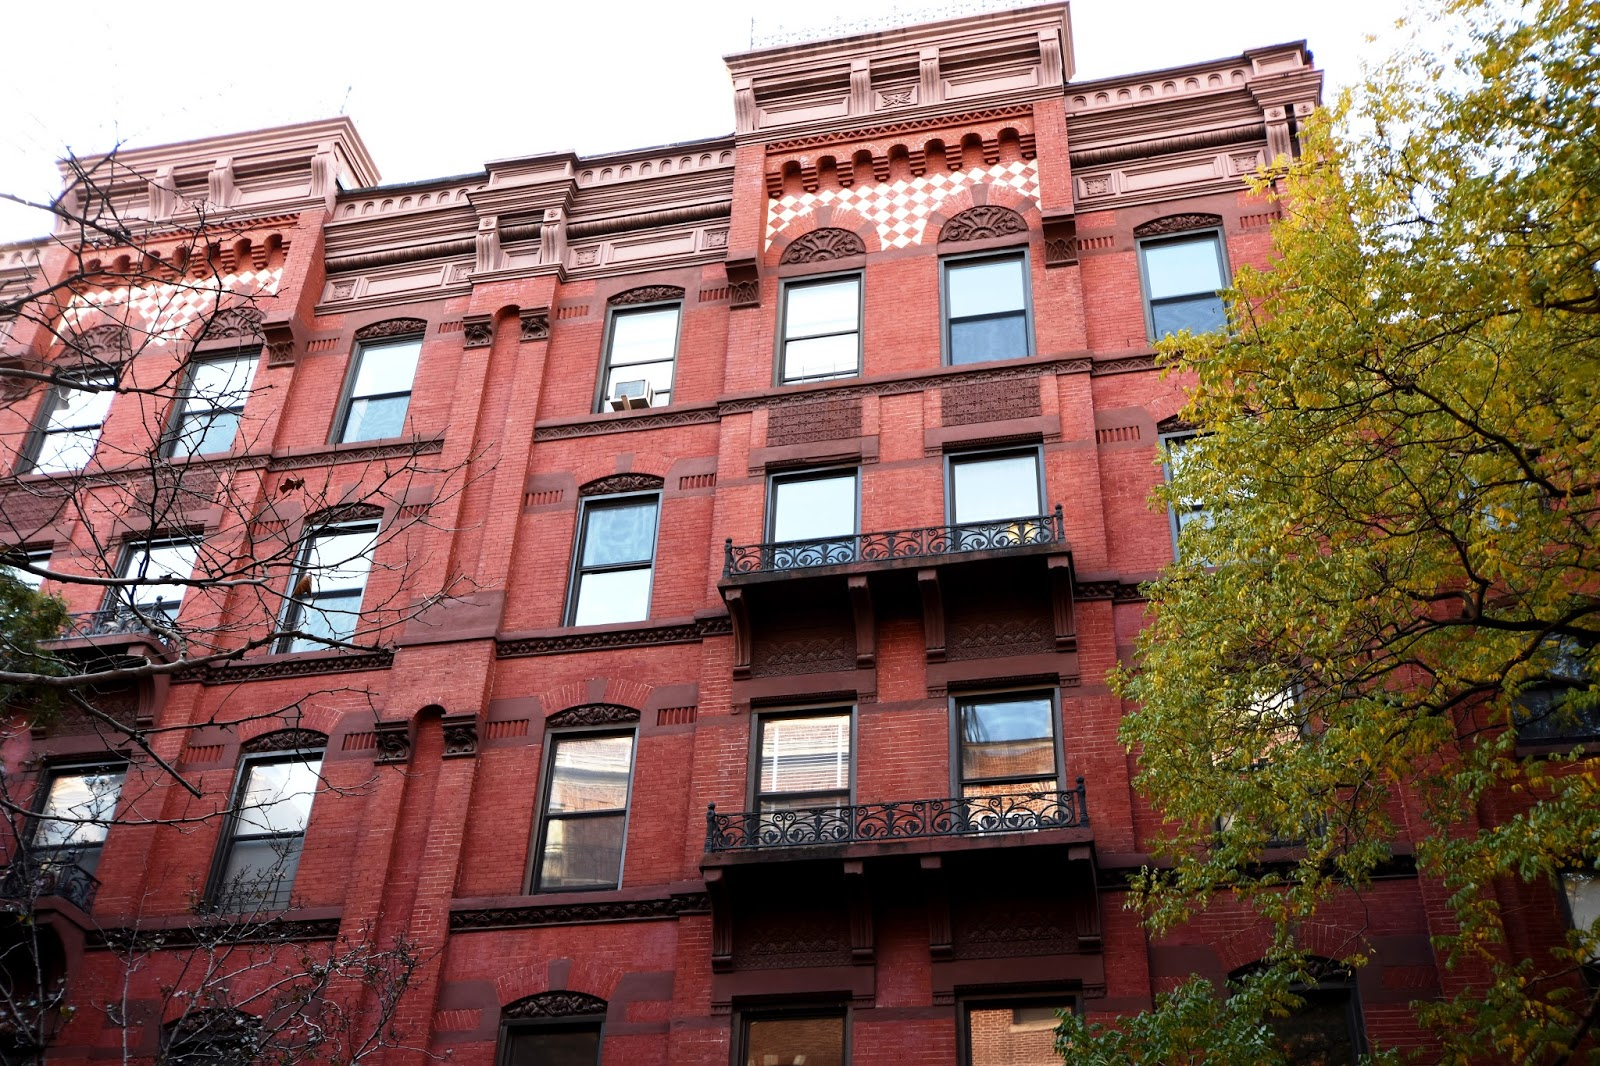 the queen anne styleterra cotta decorations including tiled panels and floral tympanums fanciful cast iron railings on brownstone balconies - Terra Cotta Tile Apartment 2015